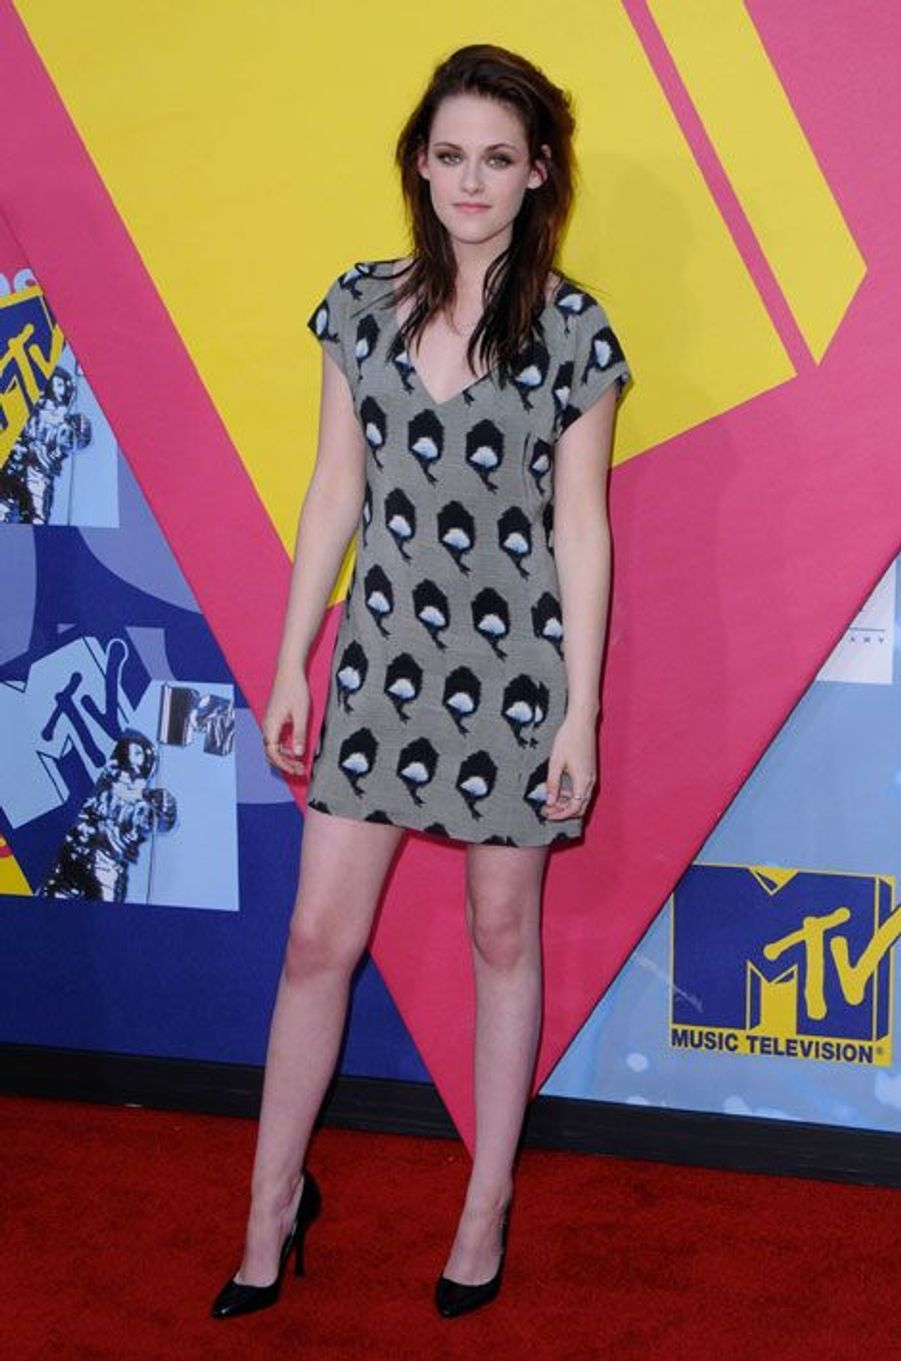 En mini-robe pour la cérémonie des MTV Video Music Awards à Los Angeles, le 7 septembre 2008